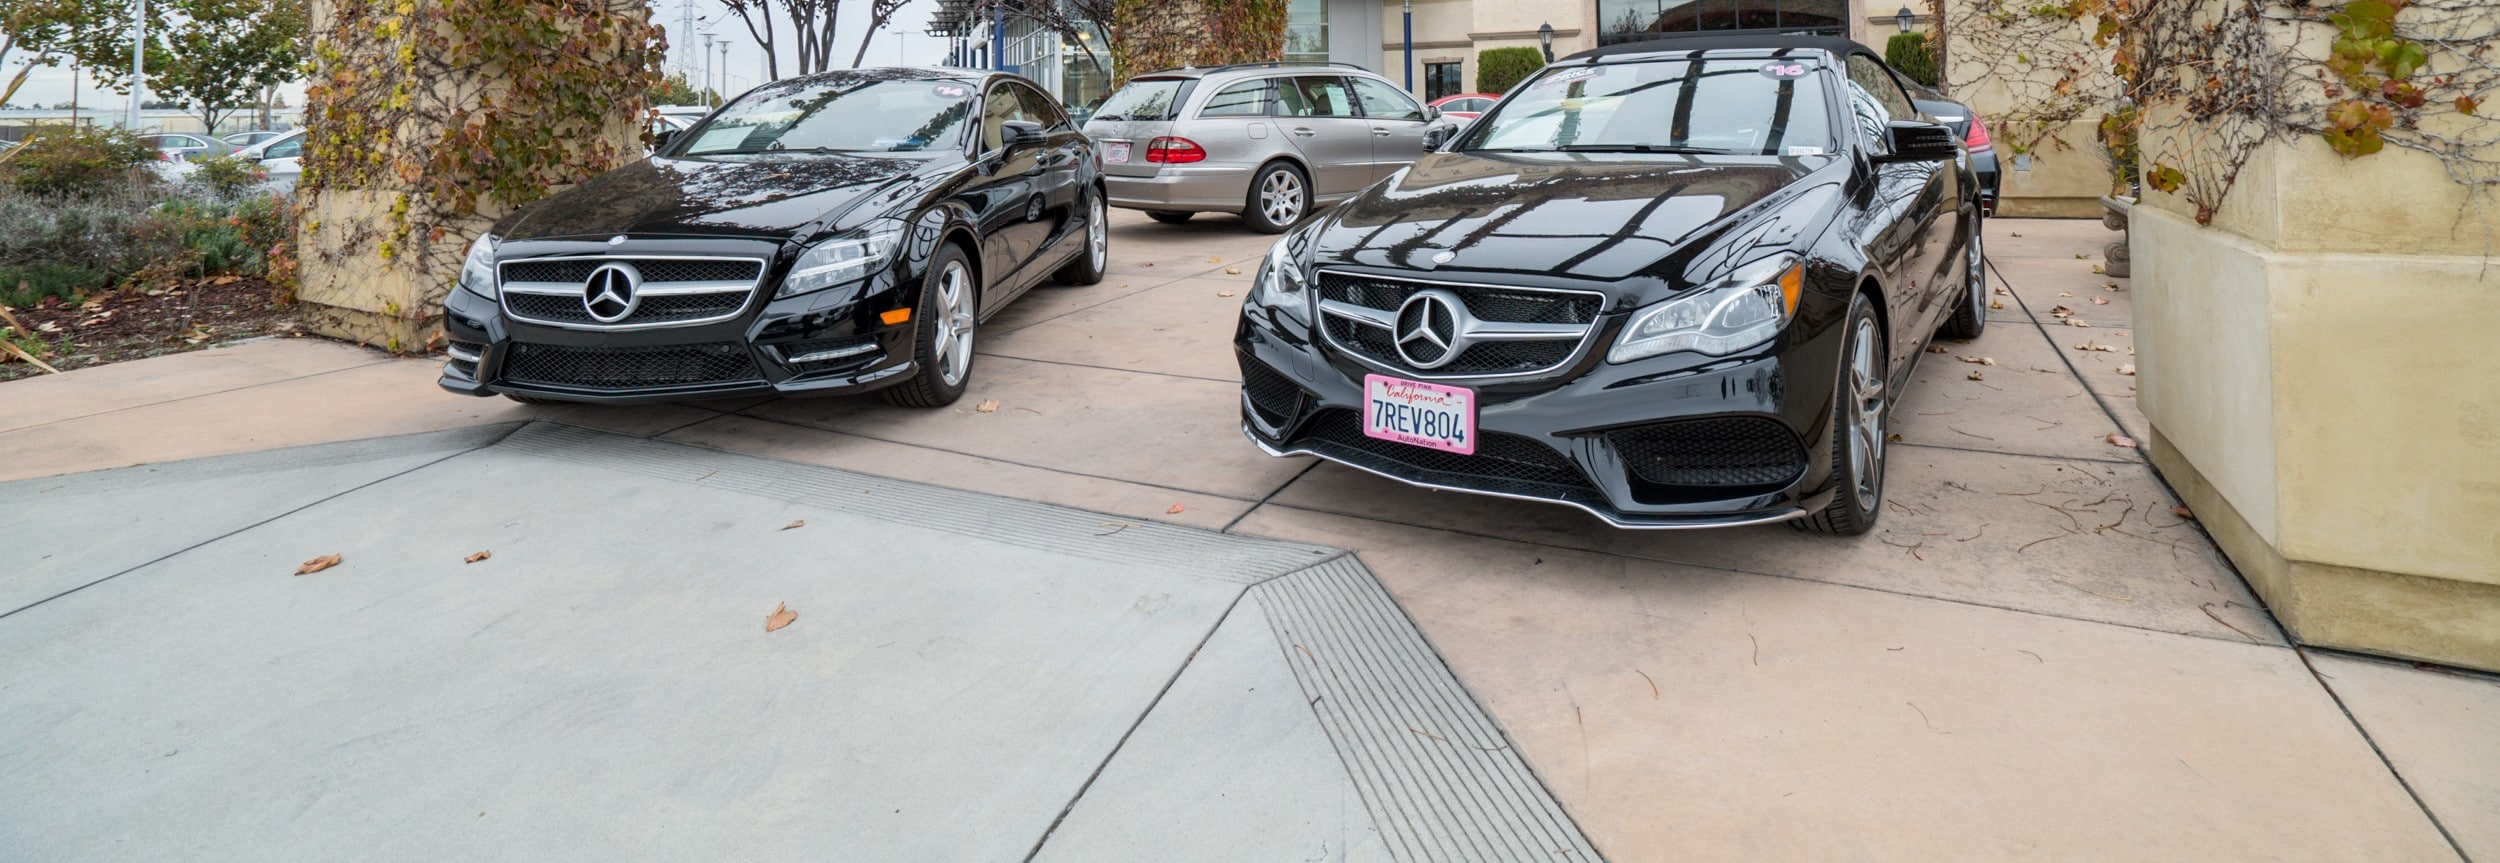 Mercedes-Benz of San Jose | Mercedes-Benz Dealer Near Me